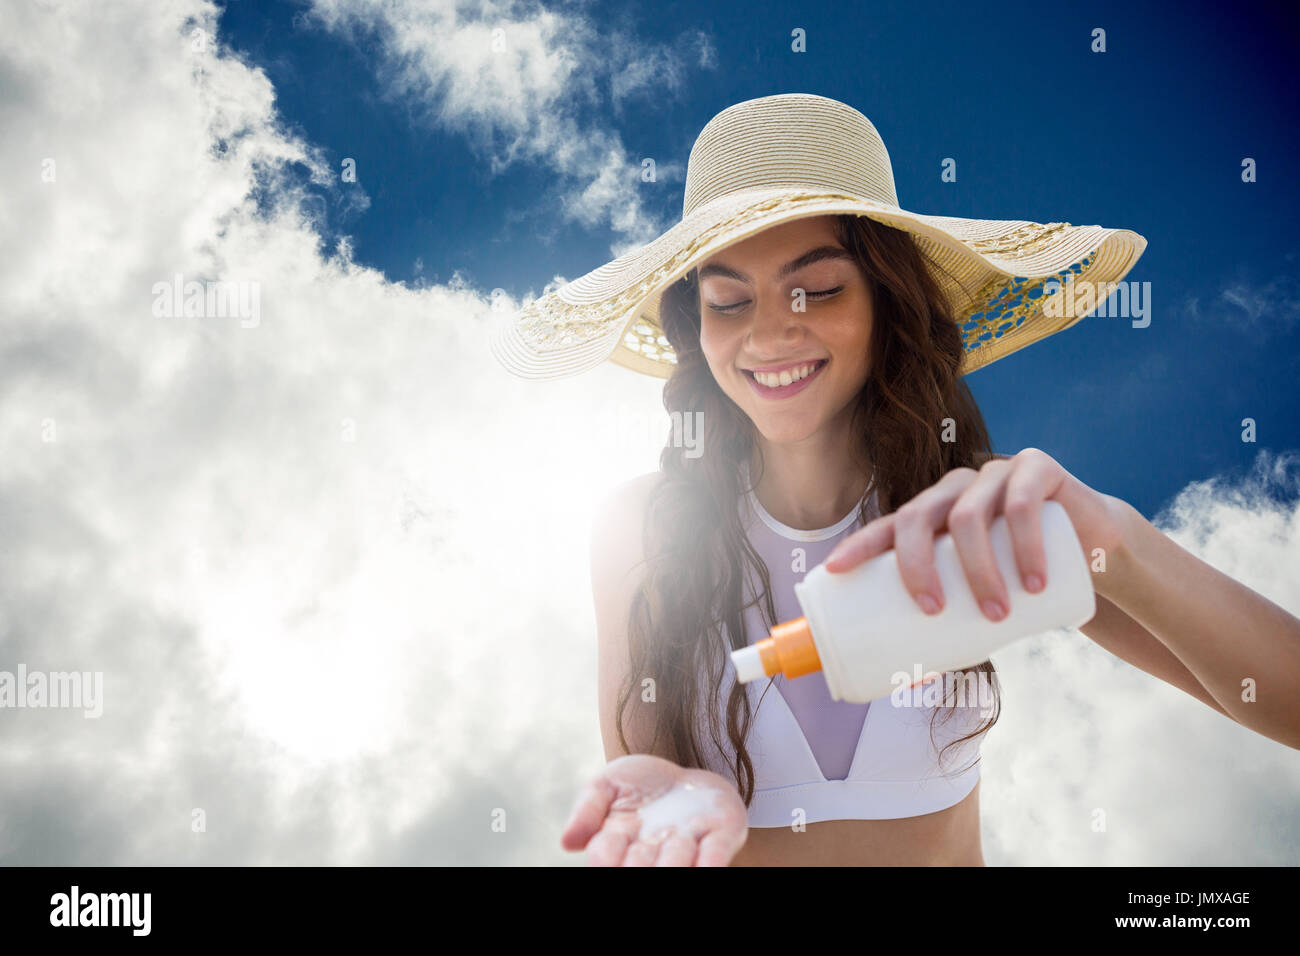 Beautiful women applying suncream and wearing hat against view of beautiful sky and clouds - Stock Image